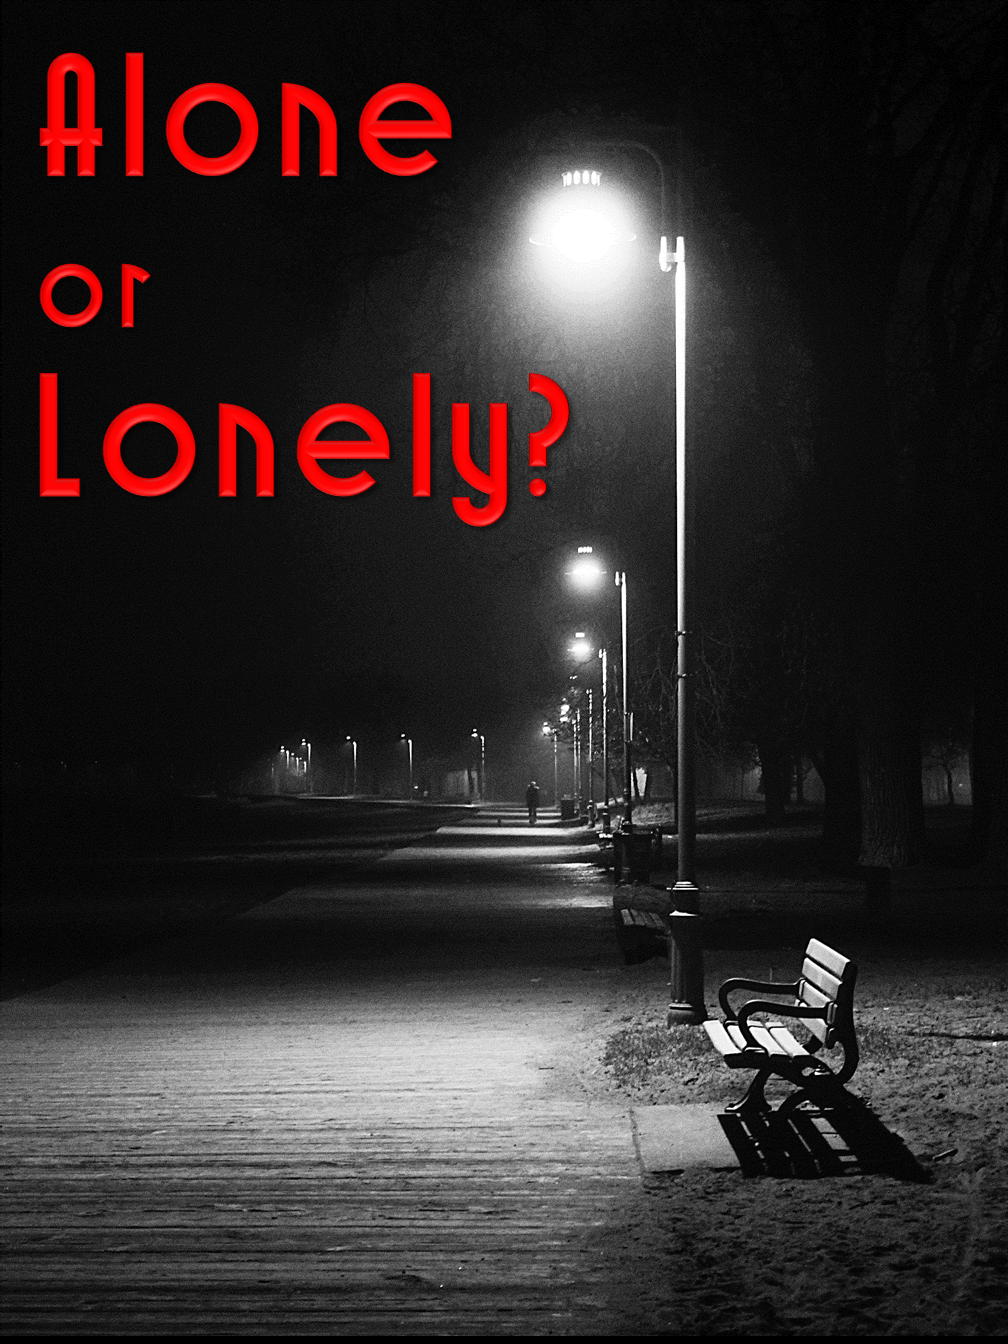 Alone or Lonely?